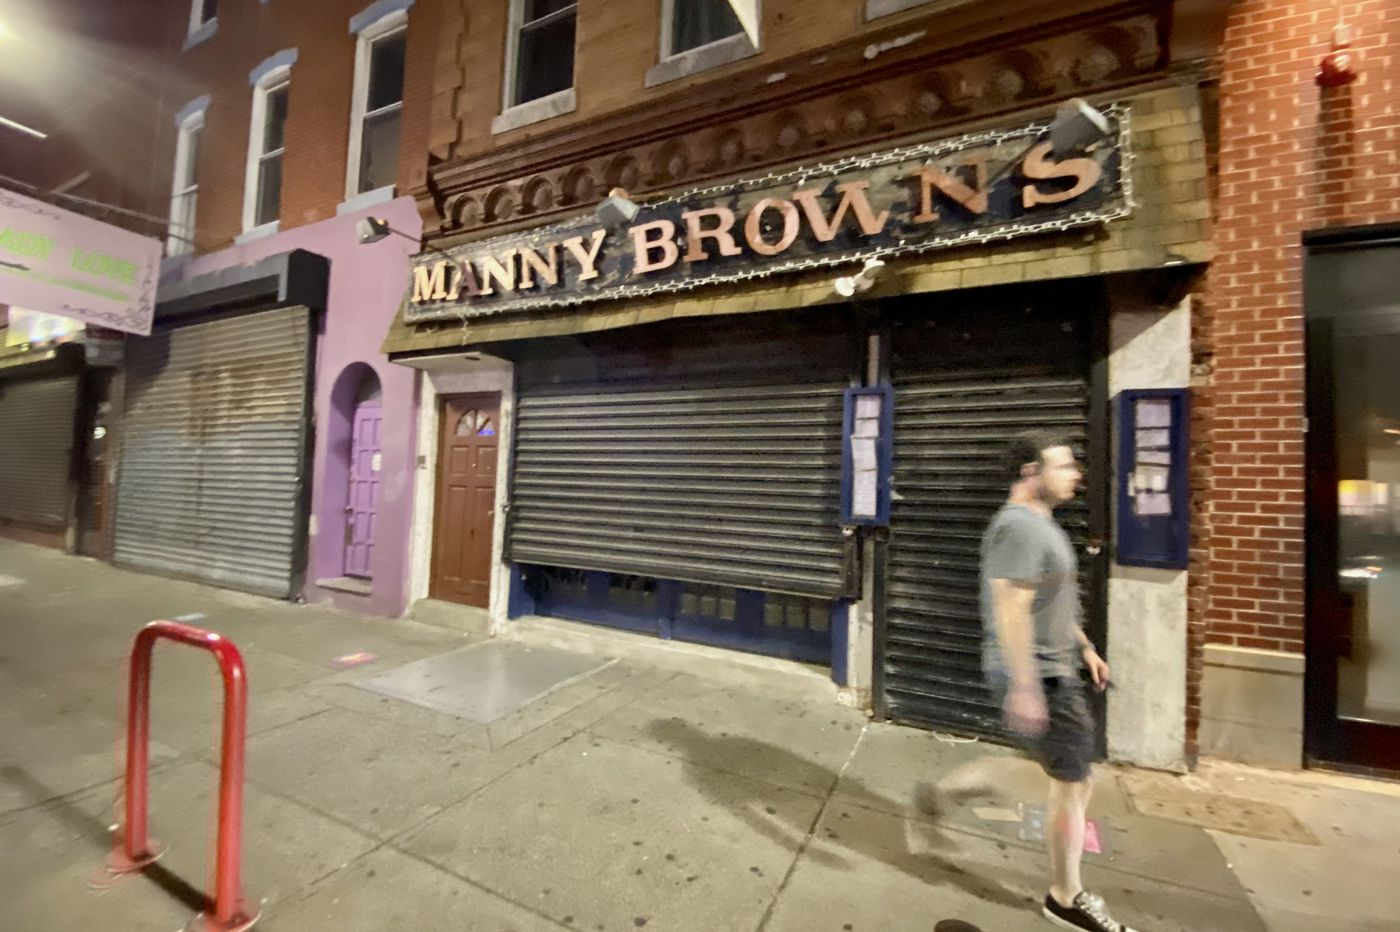 Have we seen the last of Manny Brown's, the bar fixture on South Street?